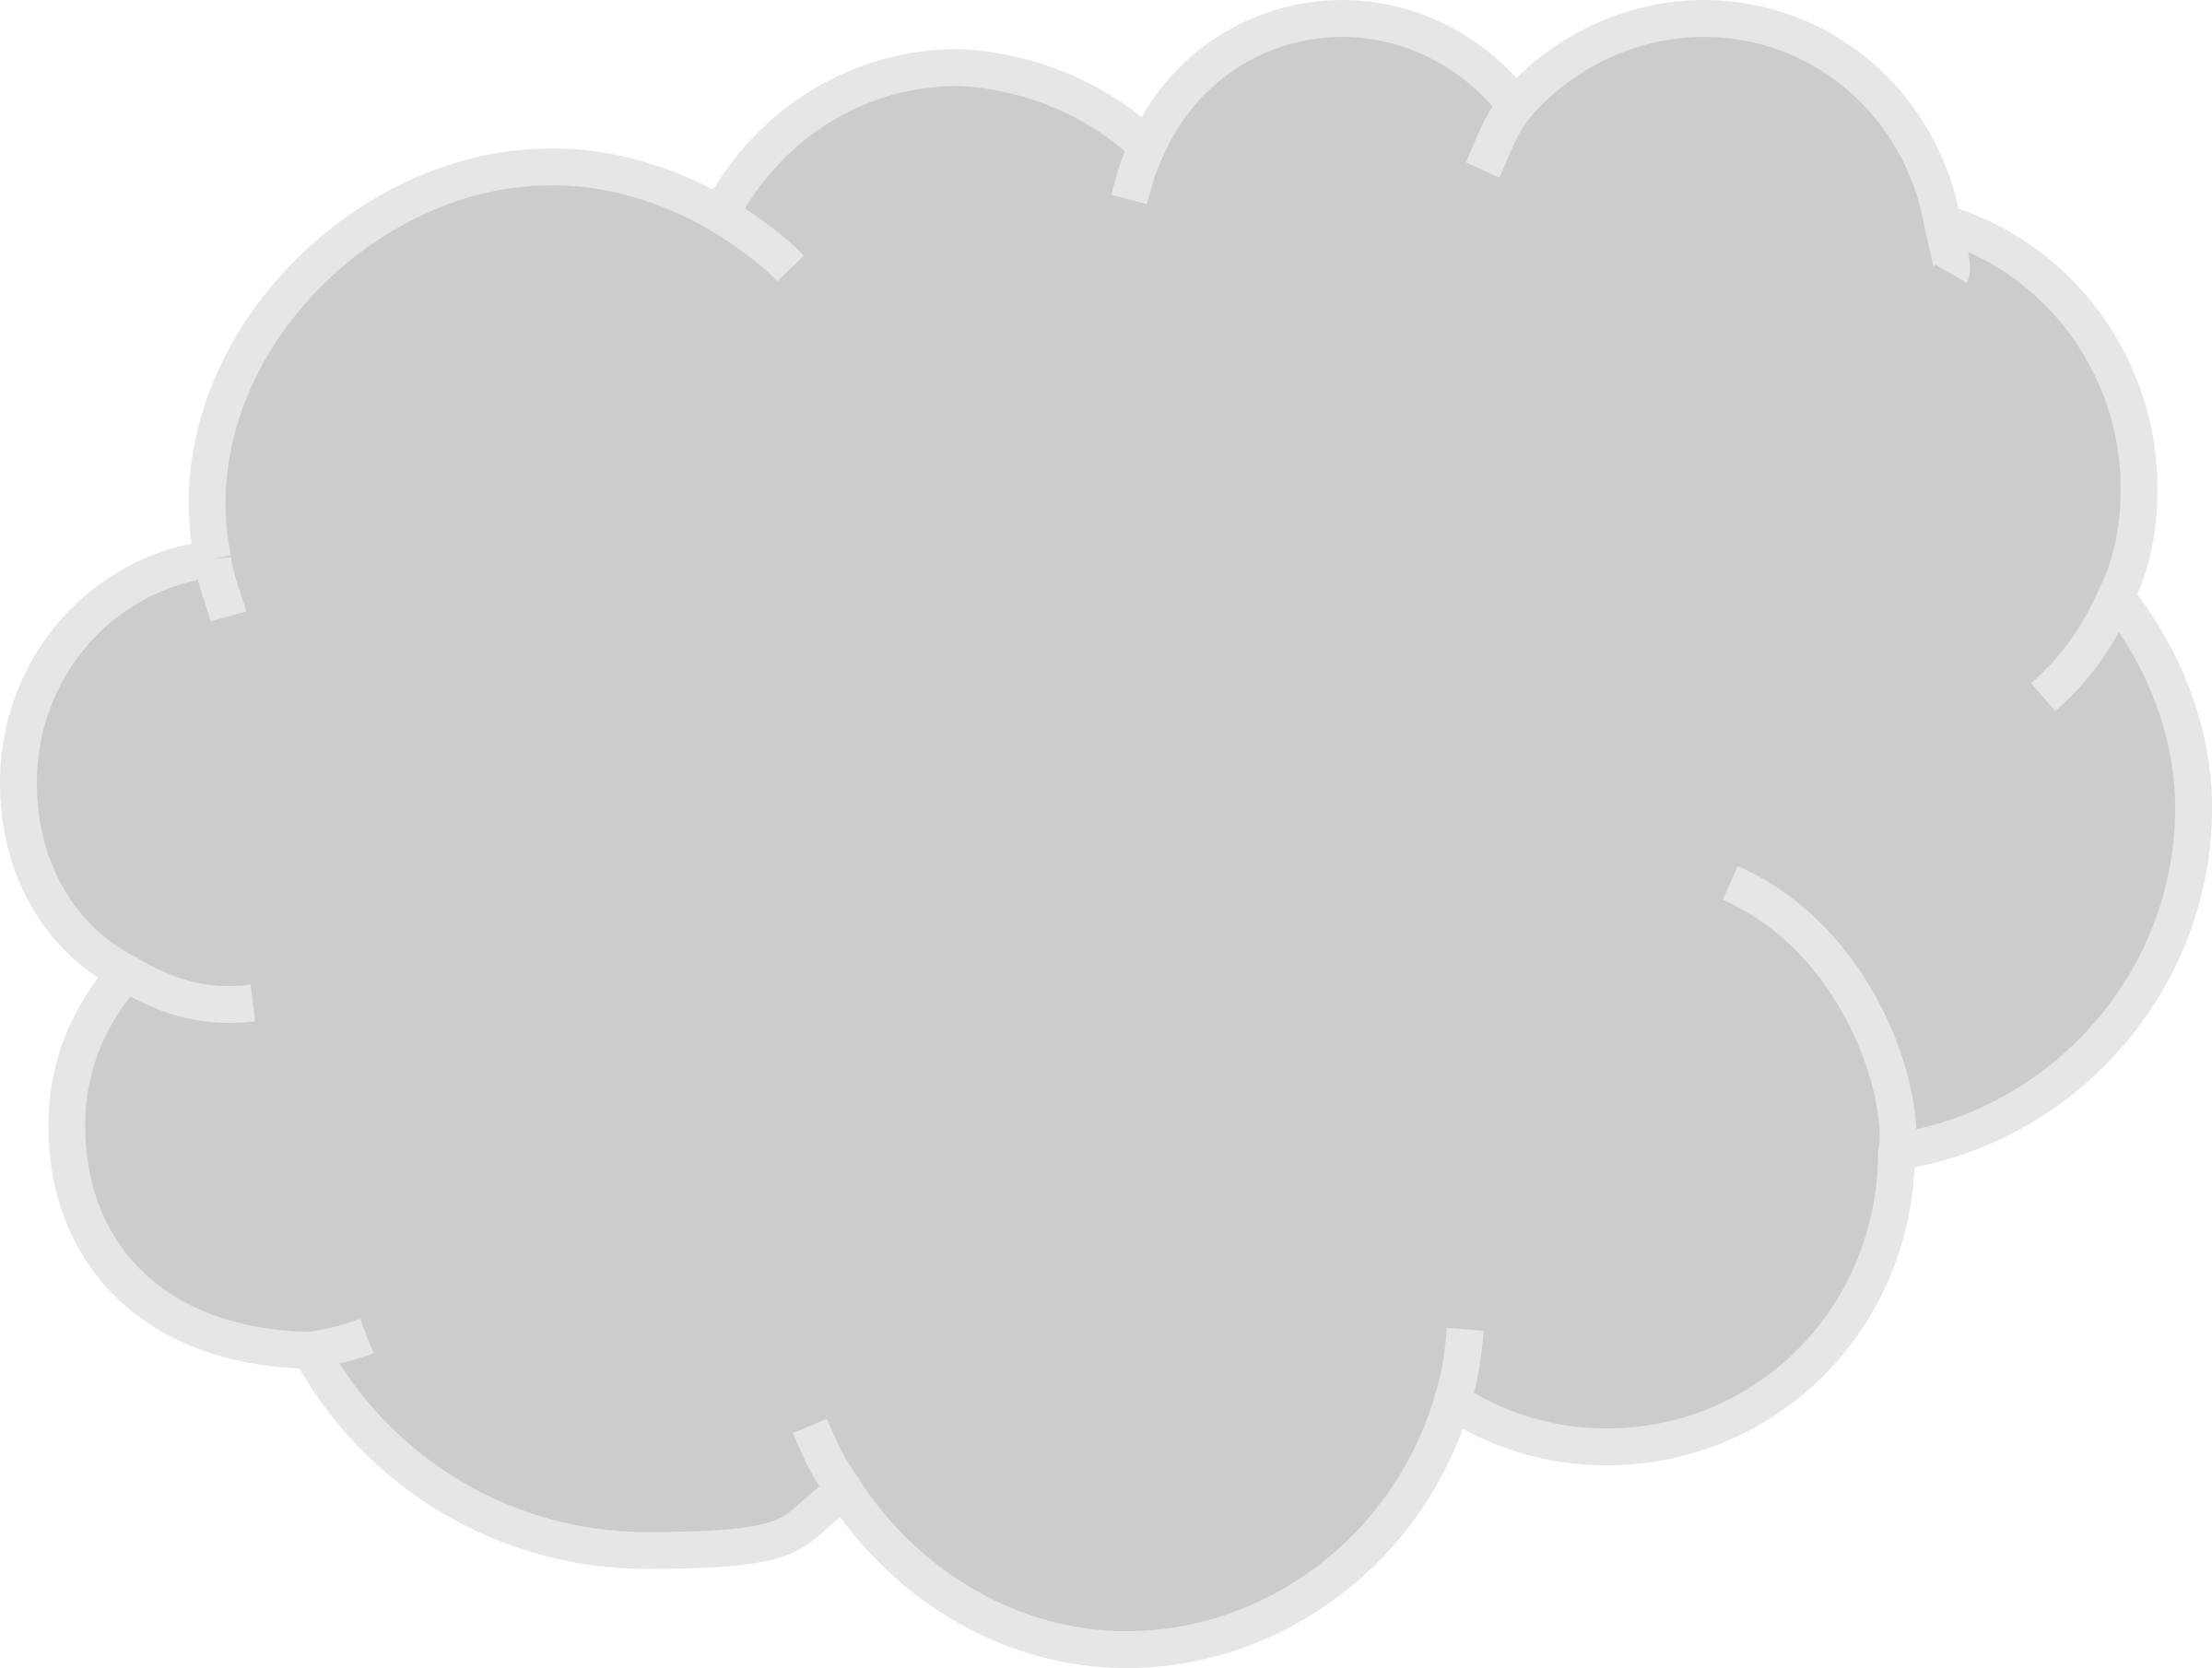 clipart cloud gray